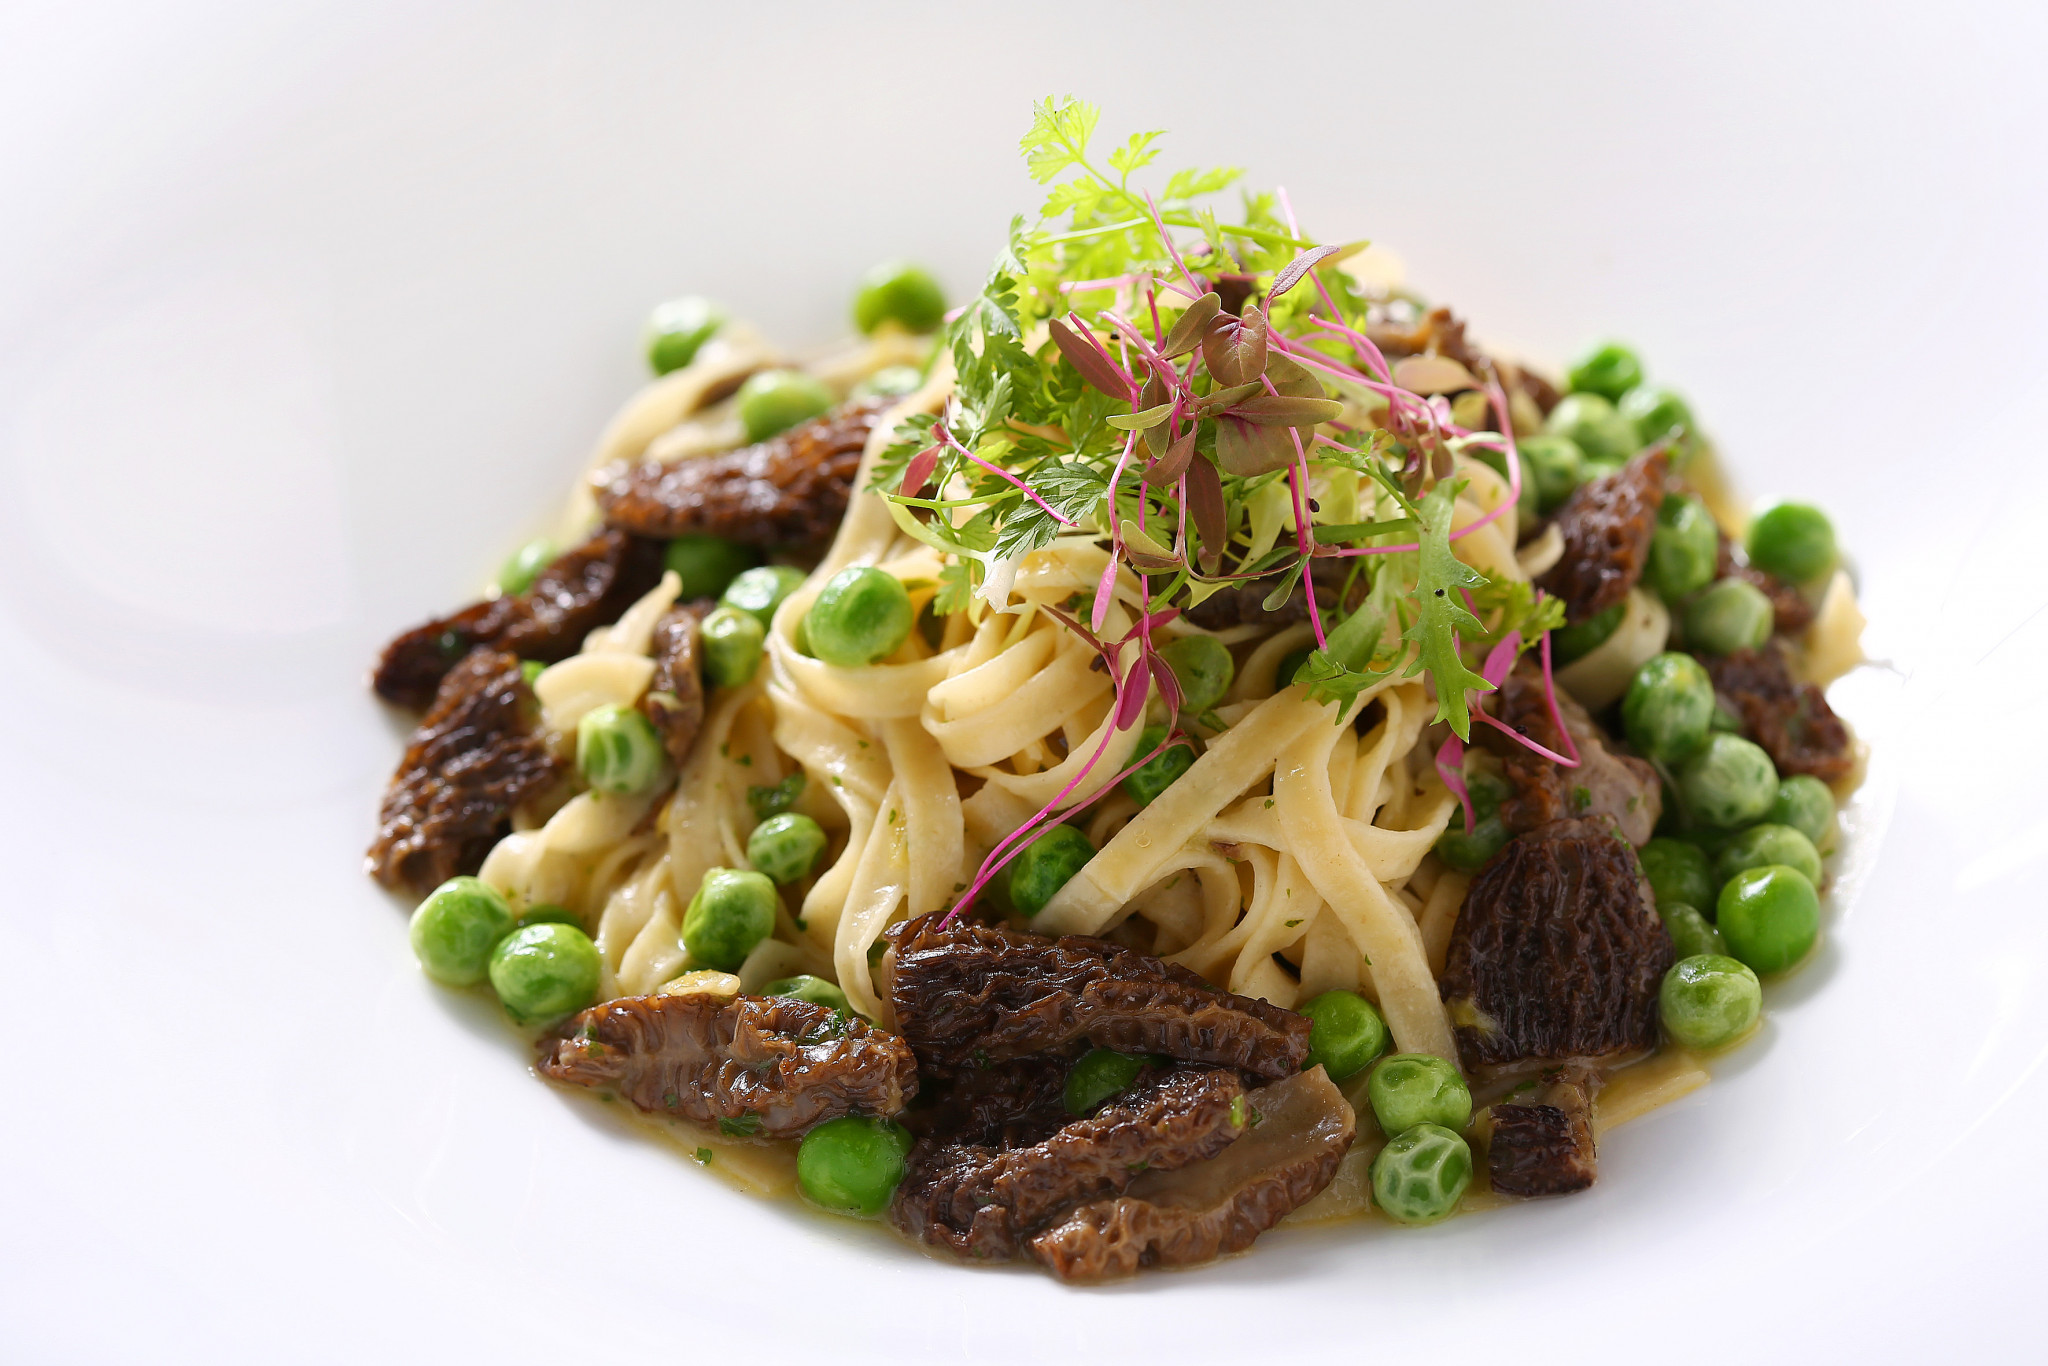 Linguini Pasta with Leeks and Morels